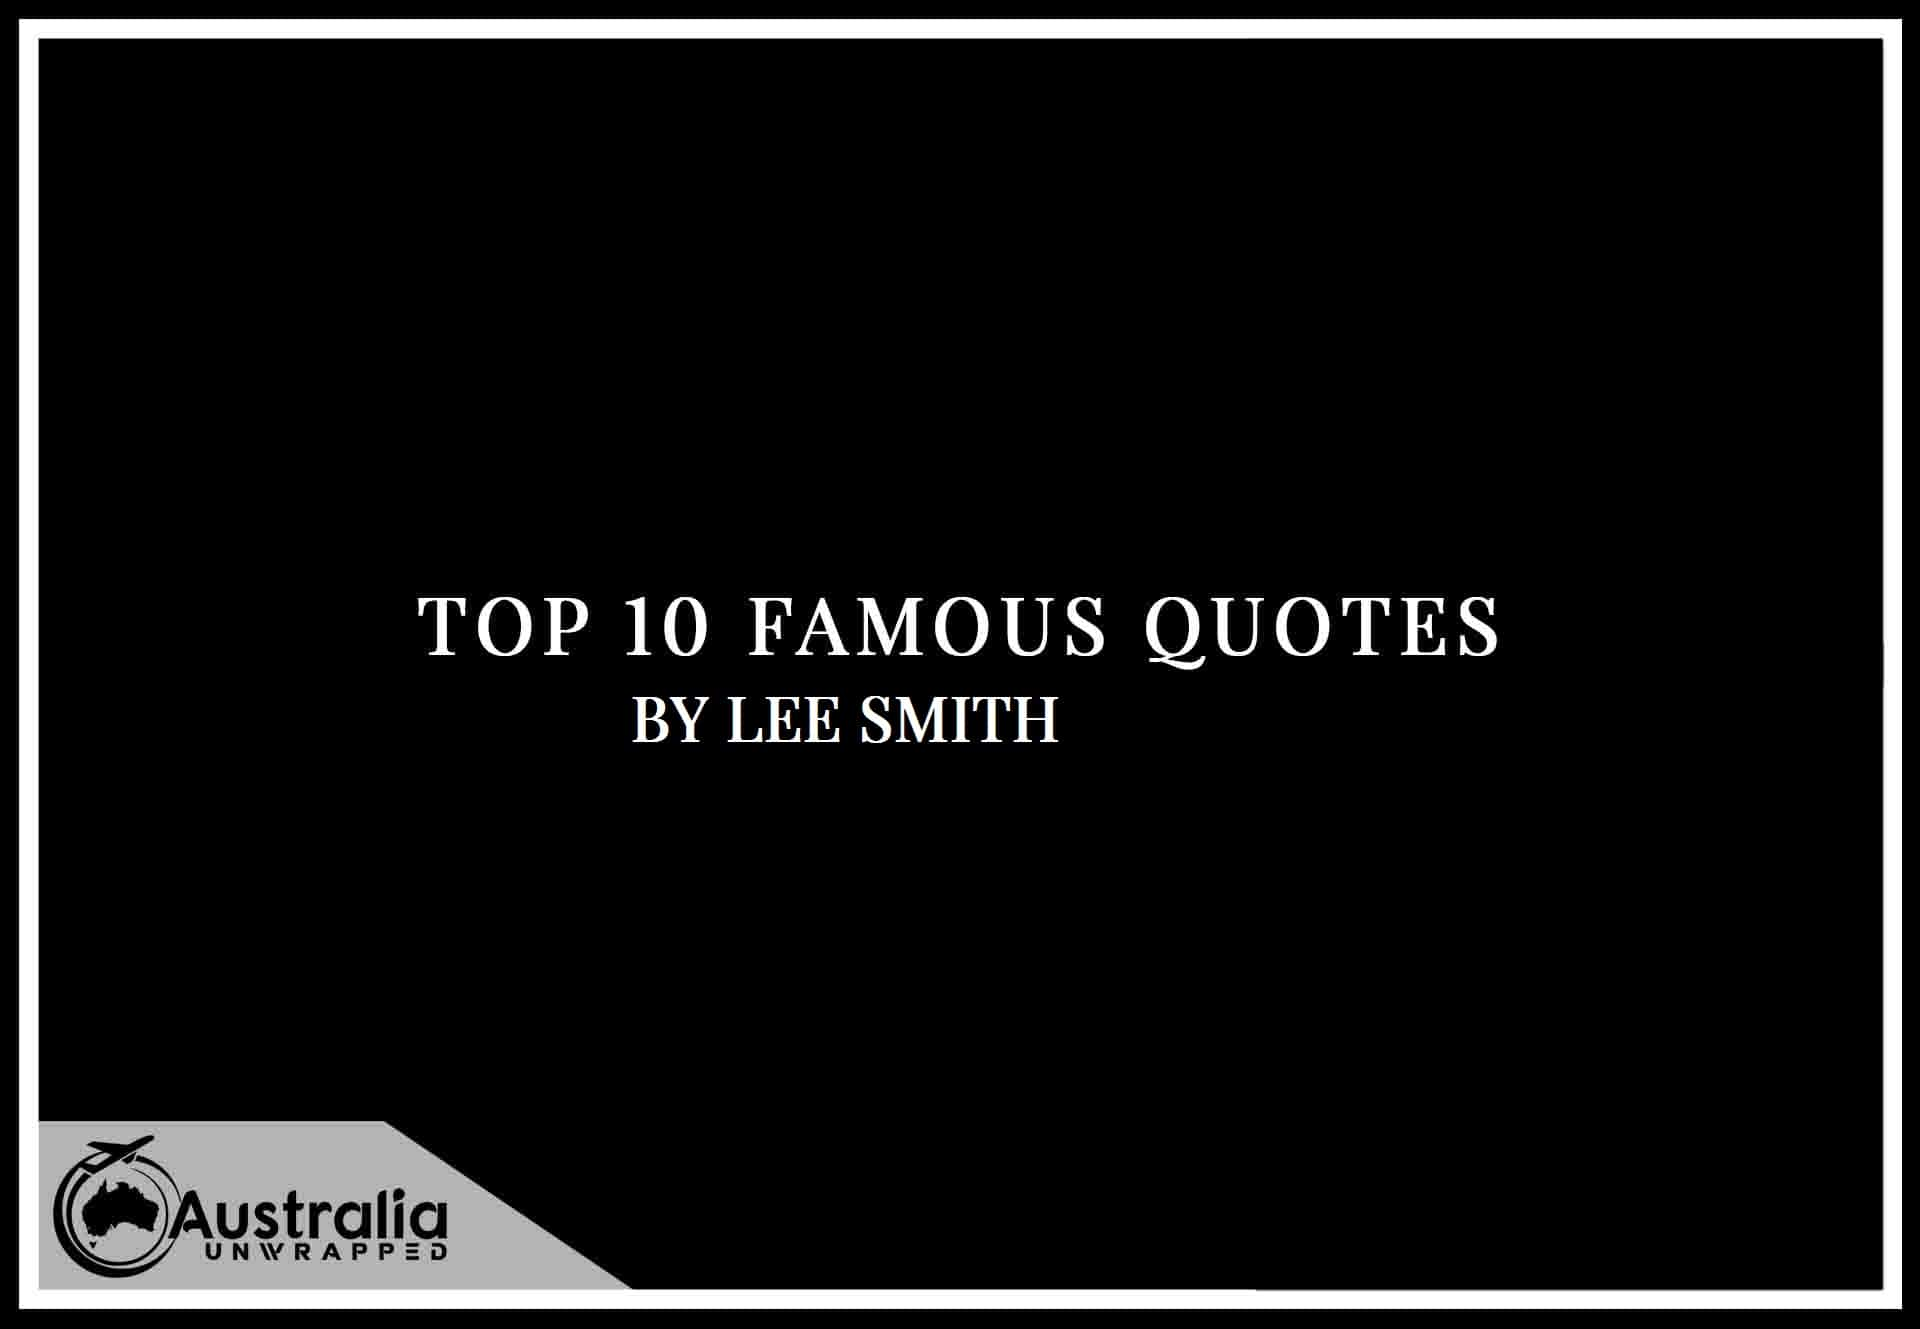 Lee Smith's Top 10 Popular and Famous Quotes